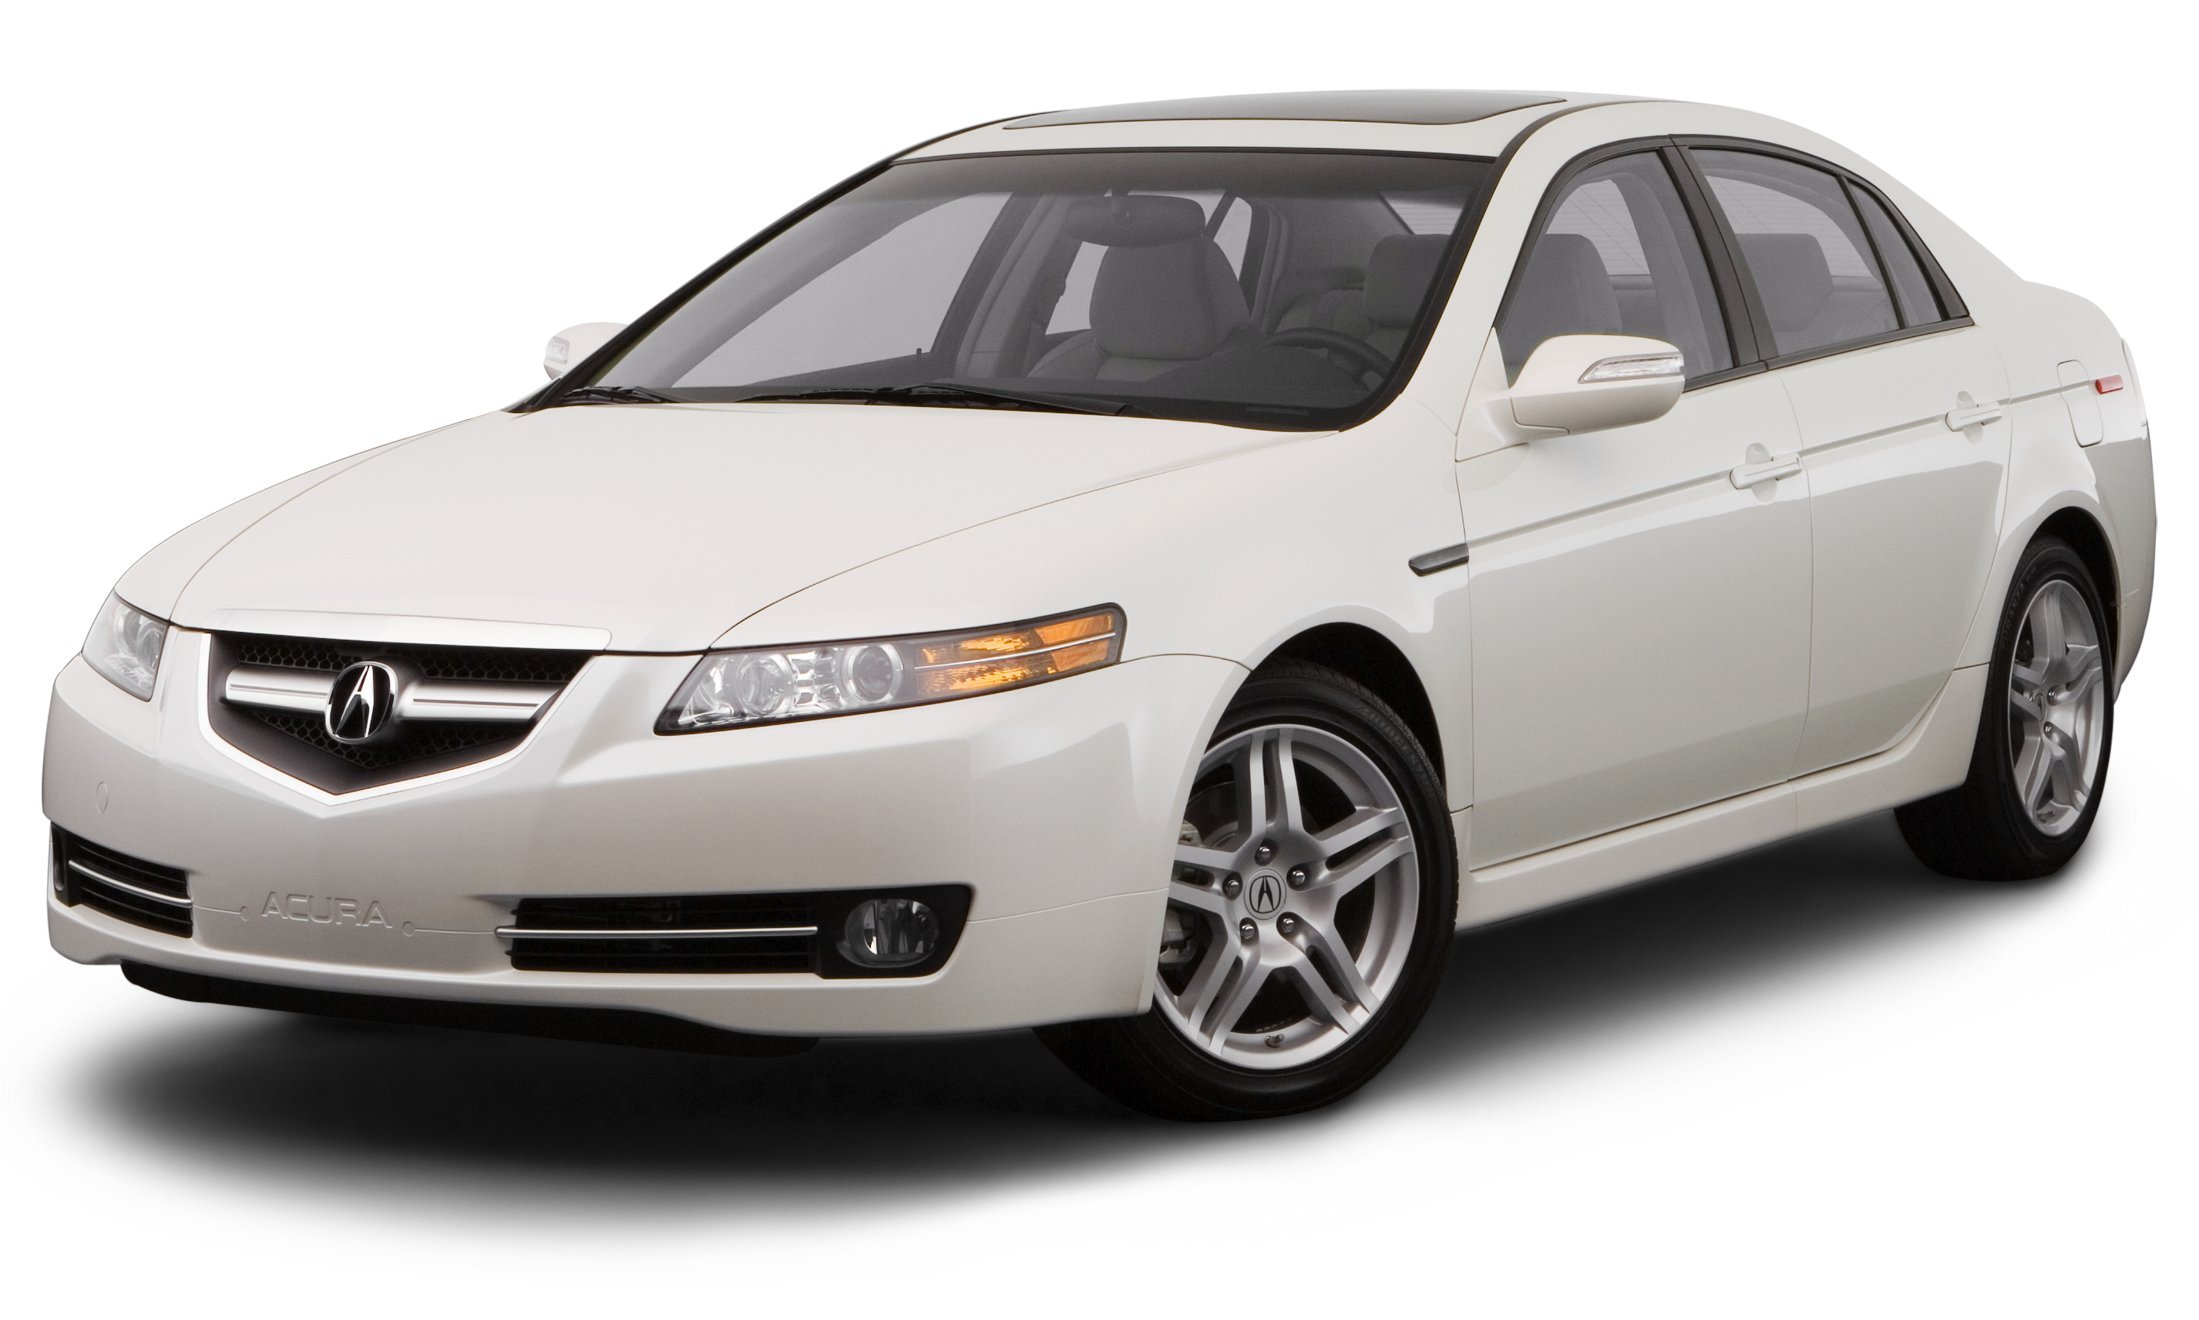 2008 acura tl reviews images and specs vehicles